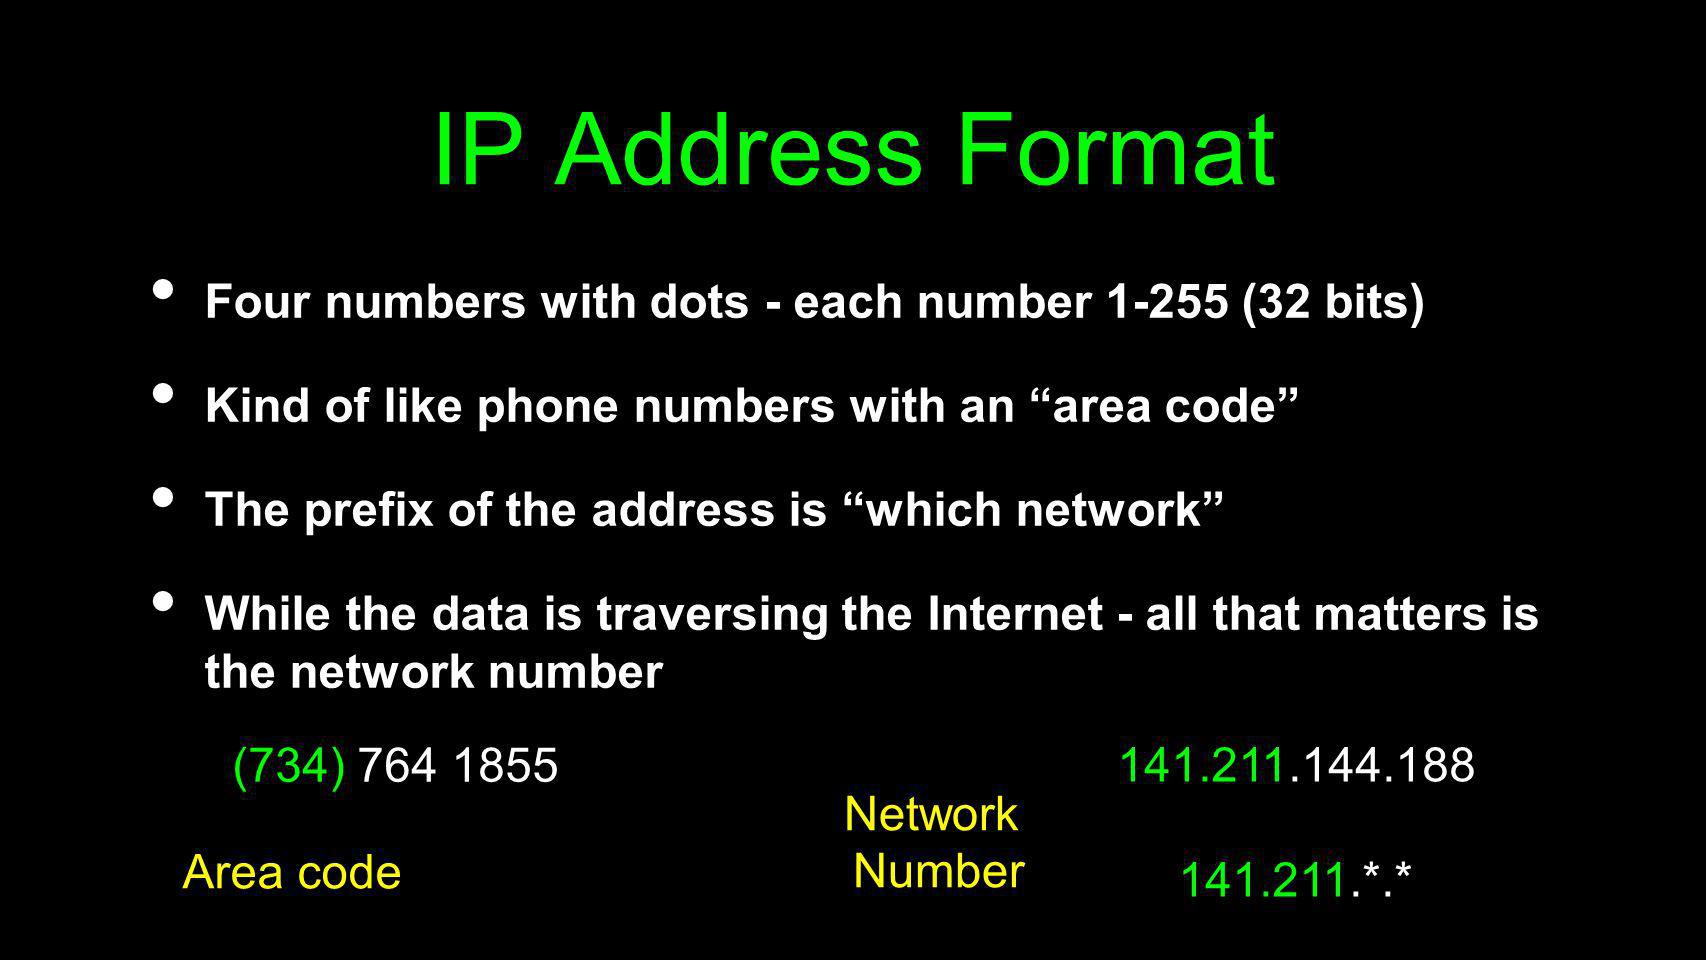 IP Address Format Four numbers with dots - each number 1-255 (32 bits)